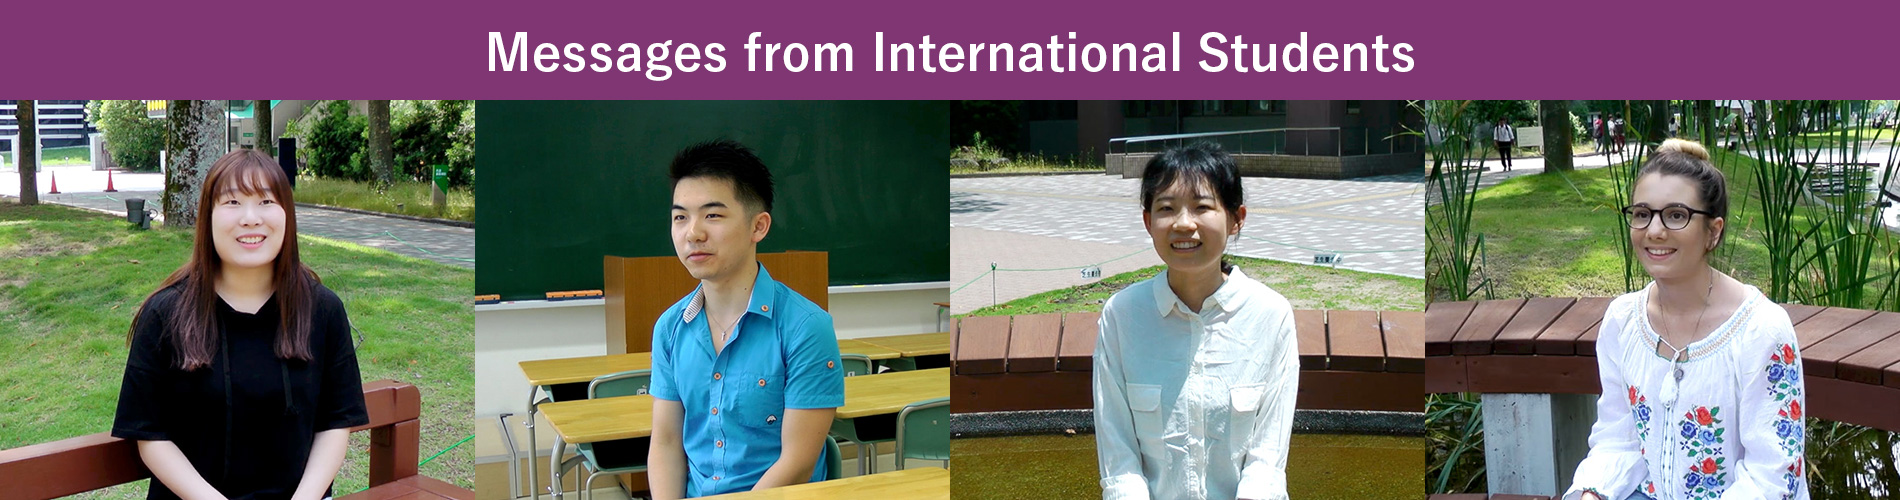 Messages from International Students